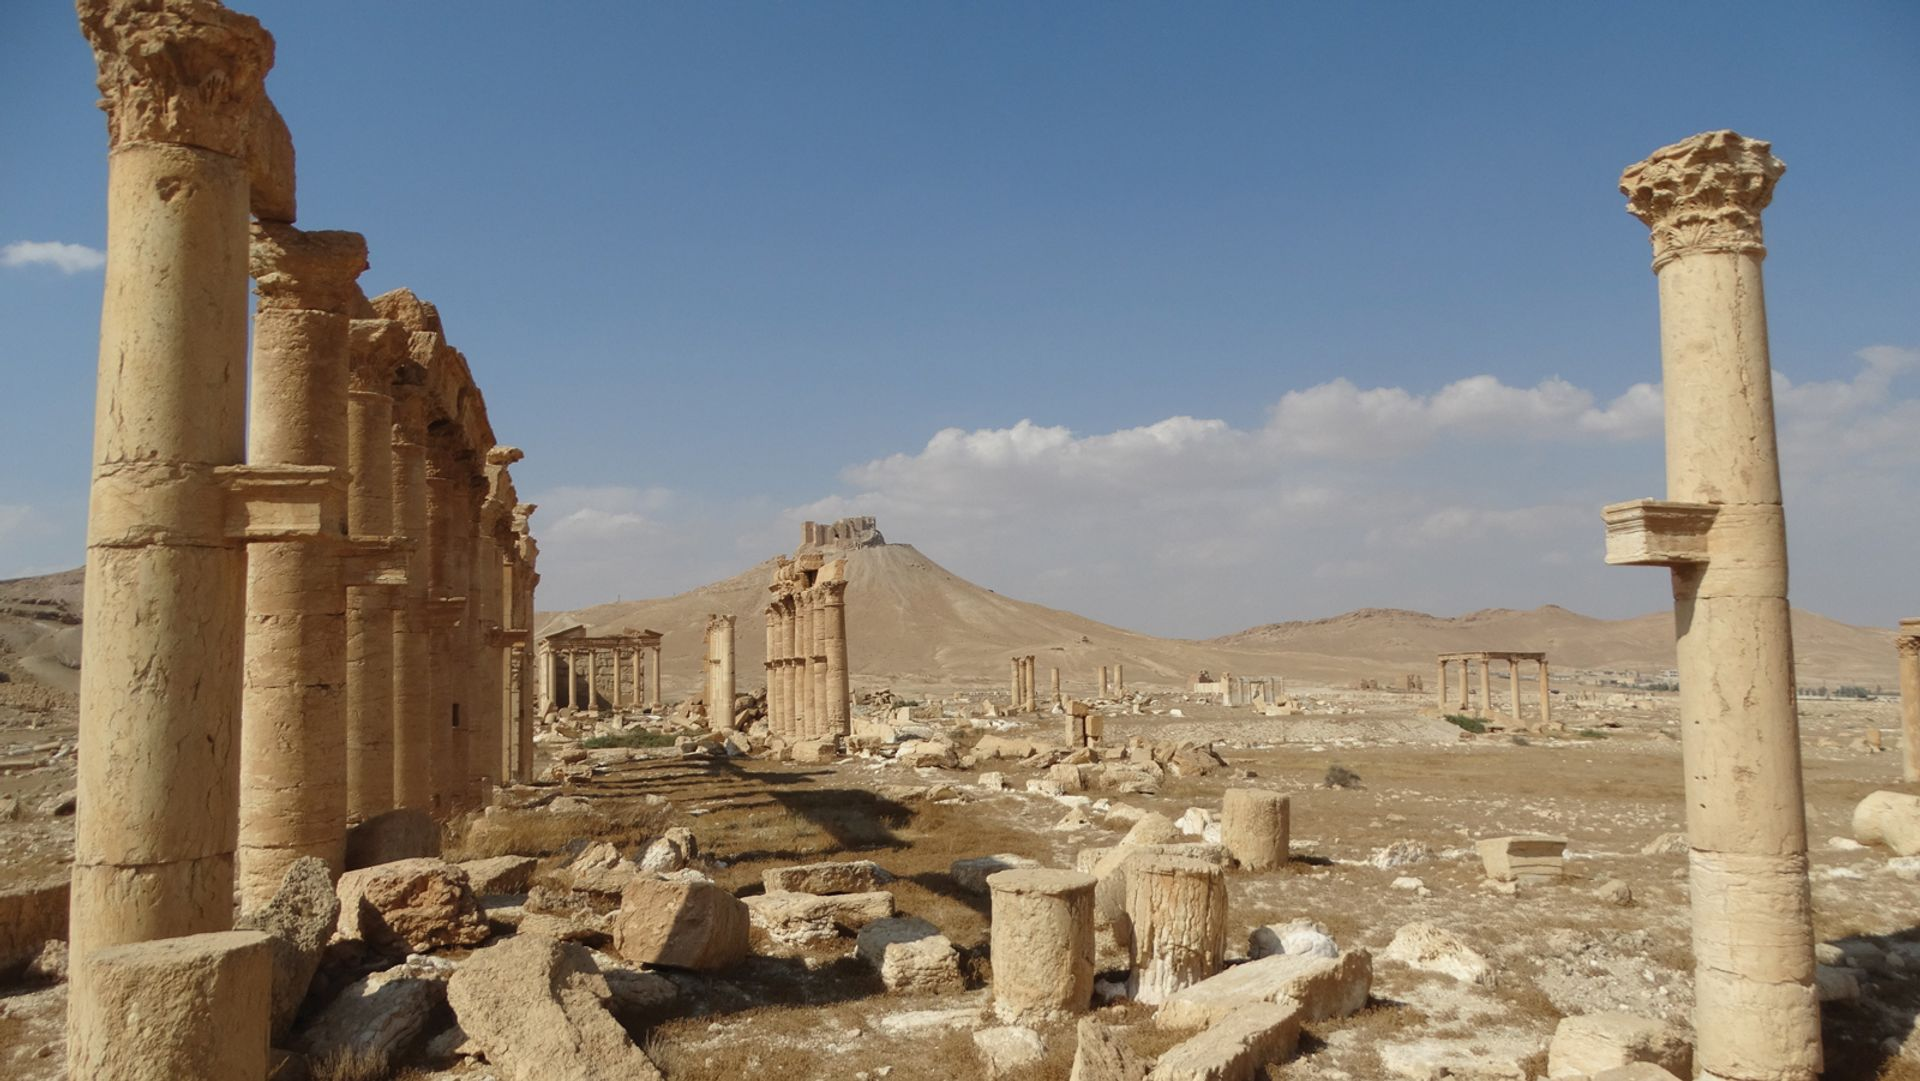 The first 25 years saw the accession of 'source countries' such as Syria, which saw its ancient Roman city of Palmyra attacked by terrorists in 2016 © Aladdin Hammami